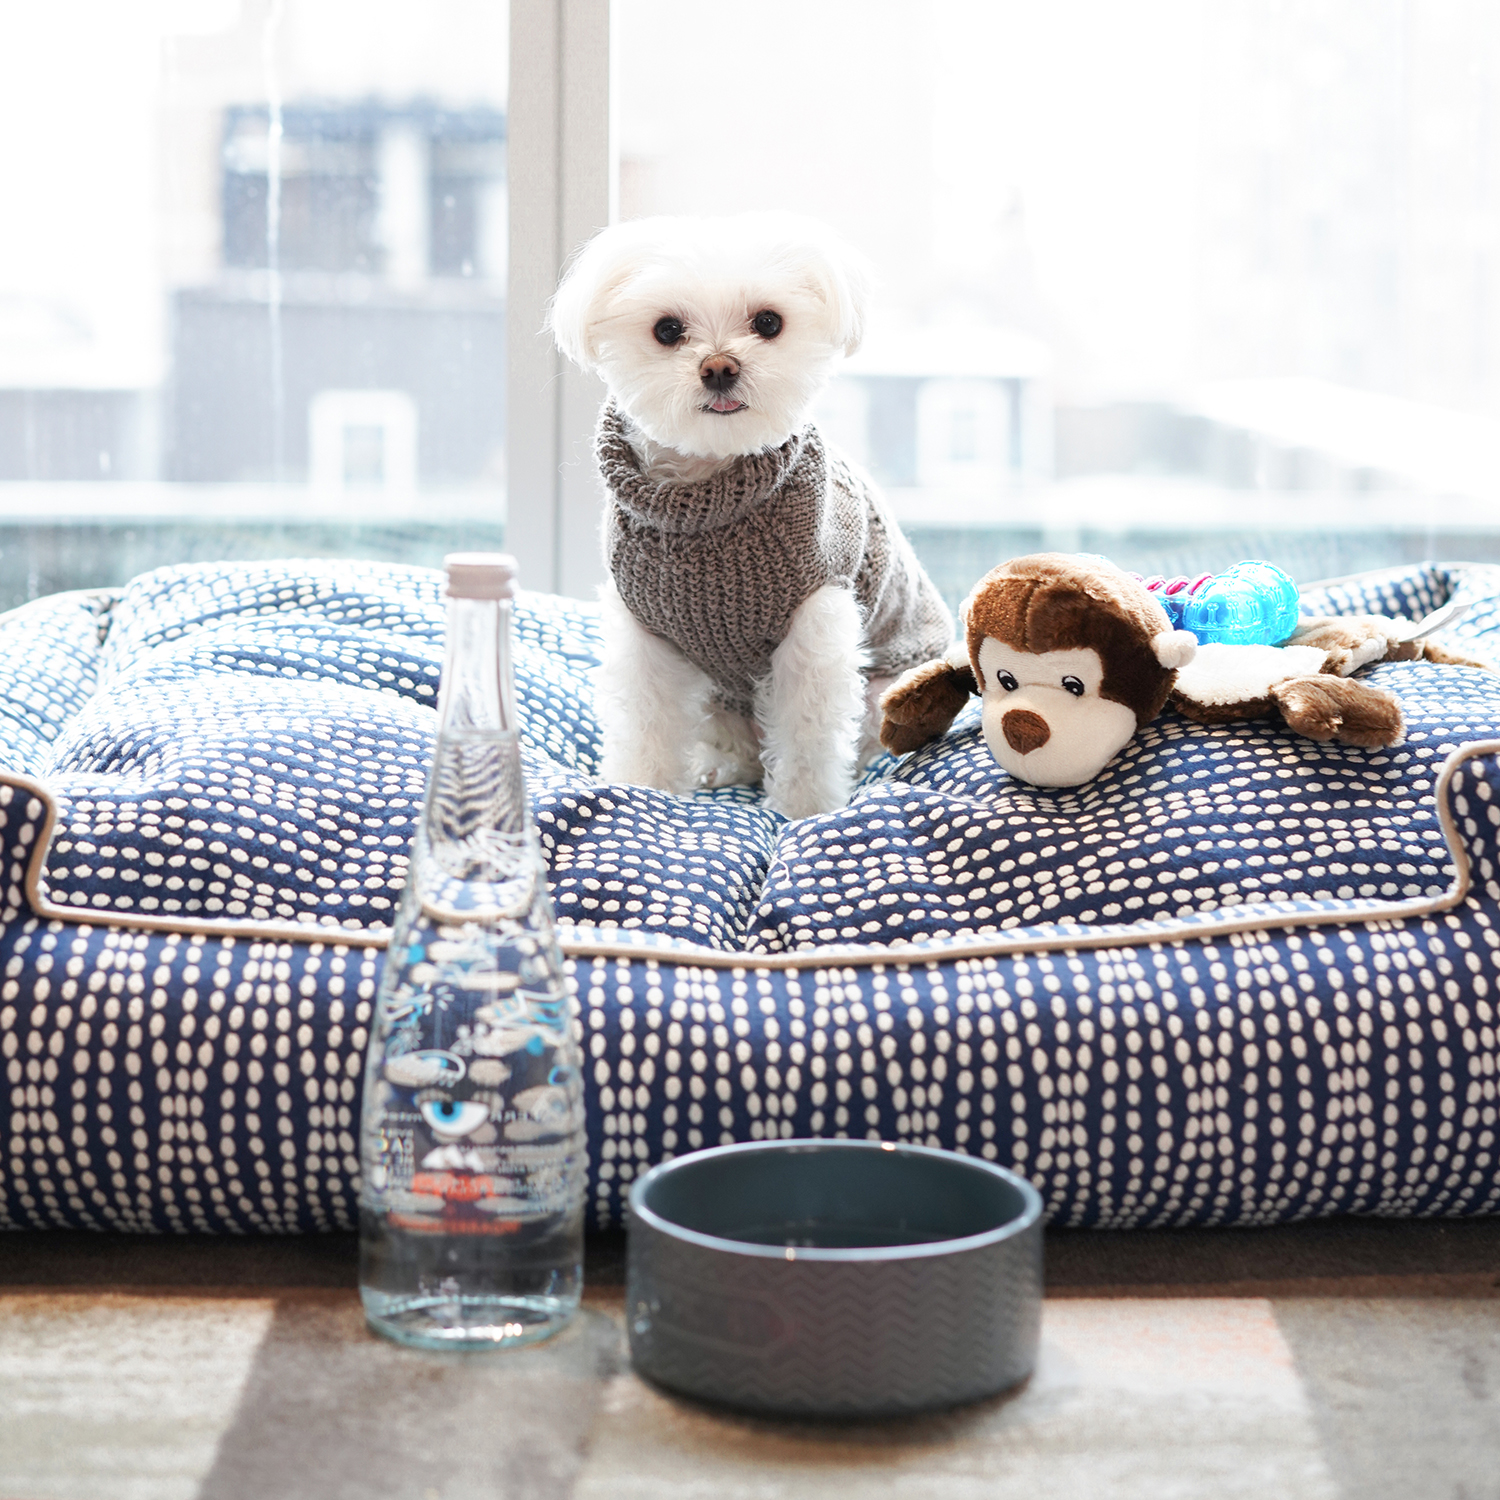 Mochi and the City - Mondrian Park Avenue dog-friendly